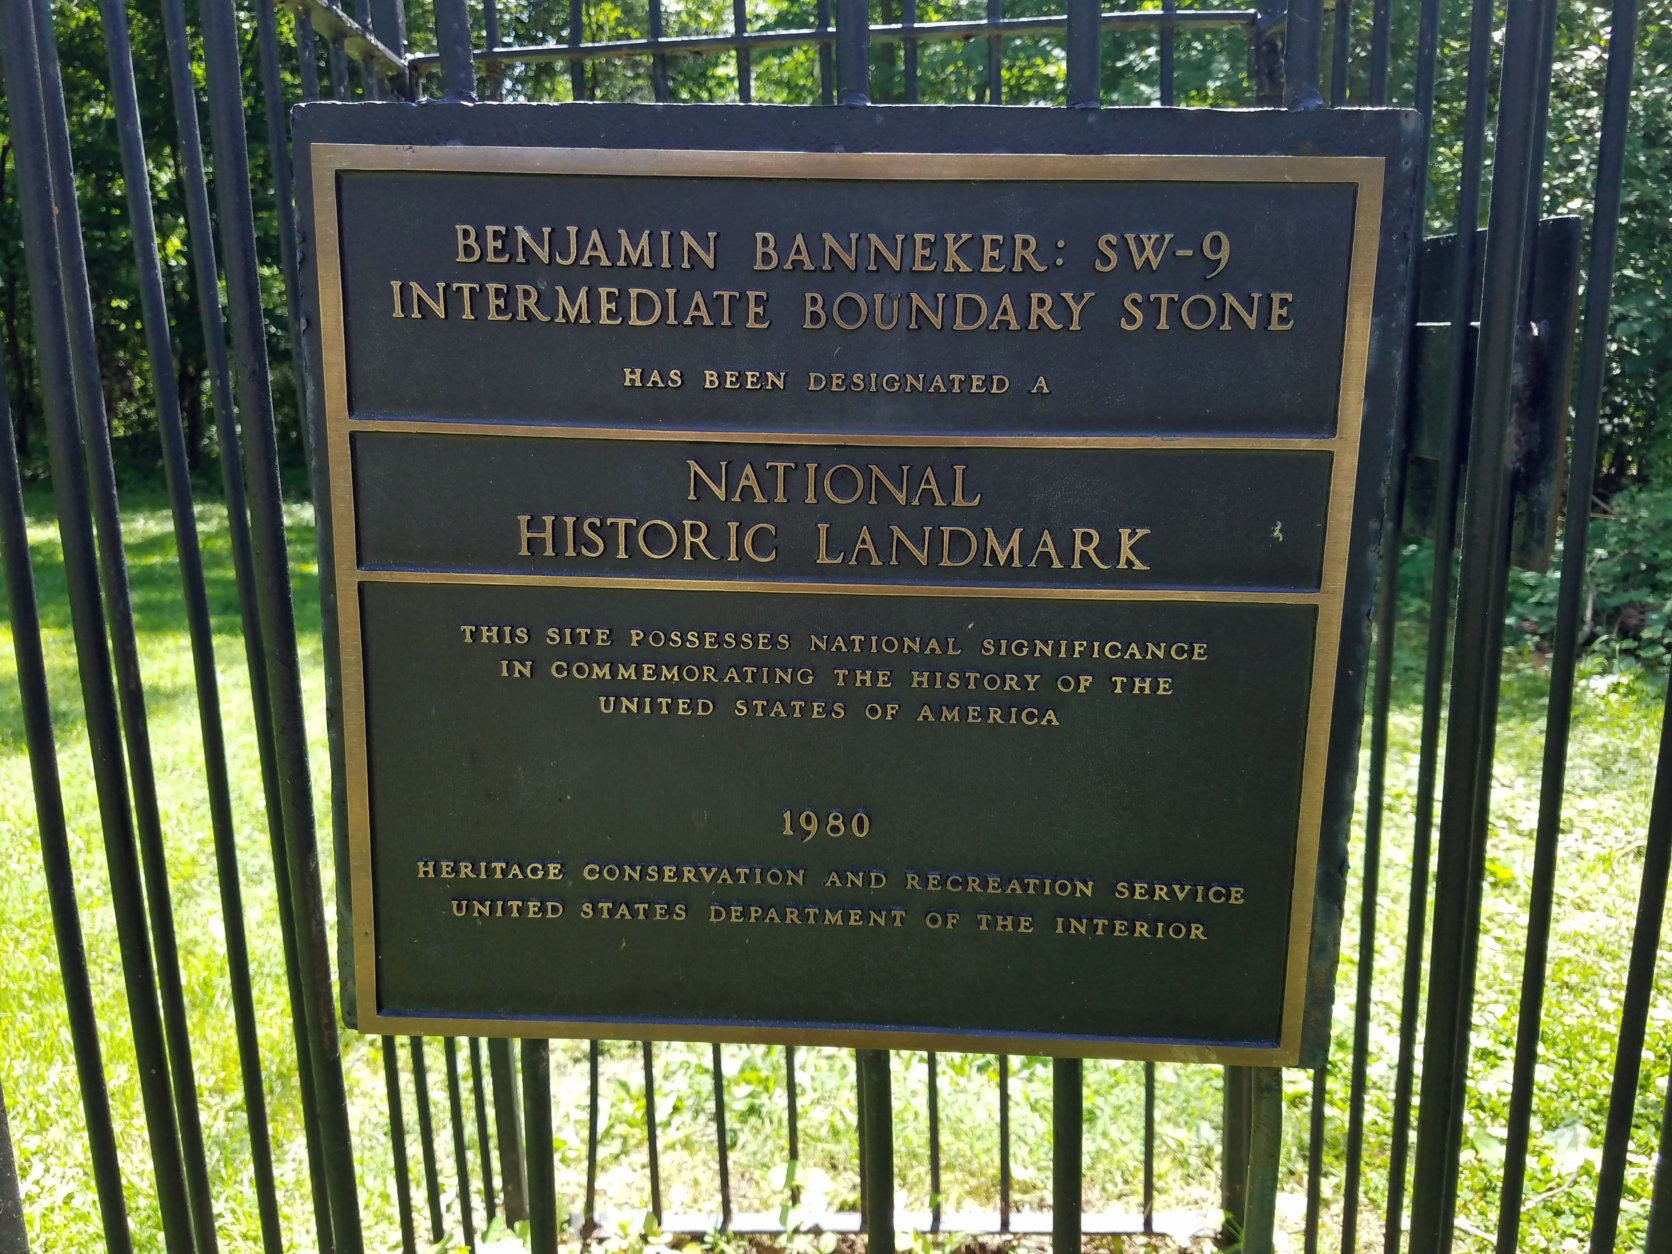 Benjamin Banneker Park in Falls Church, Virginia, is the home of SW9. (WTOP/William Vitka)